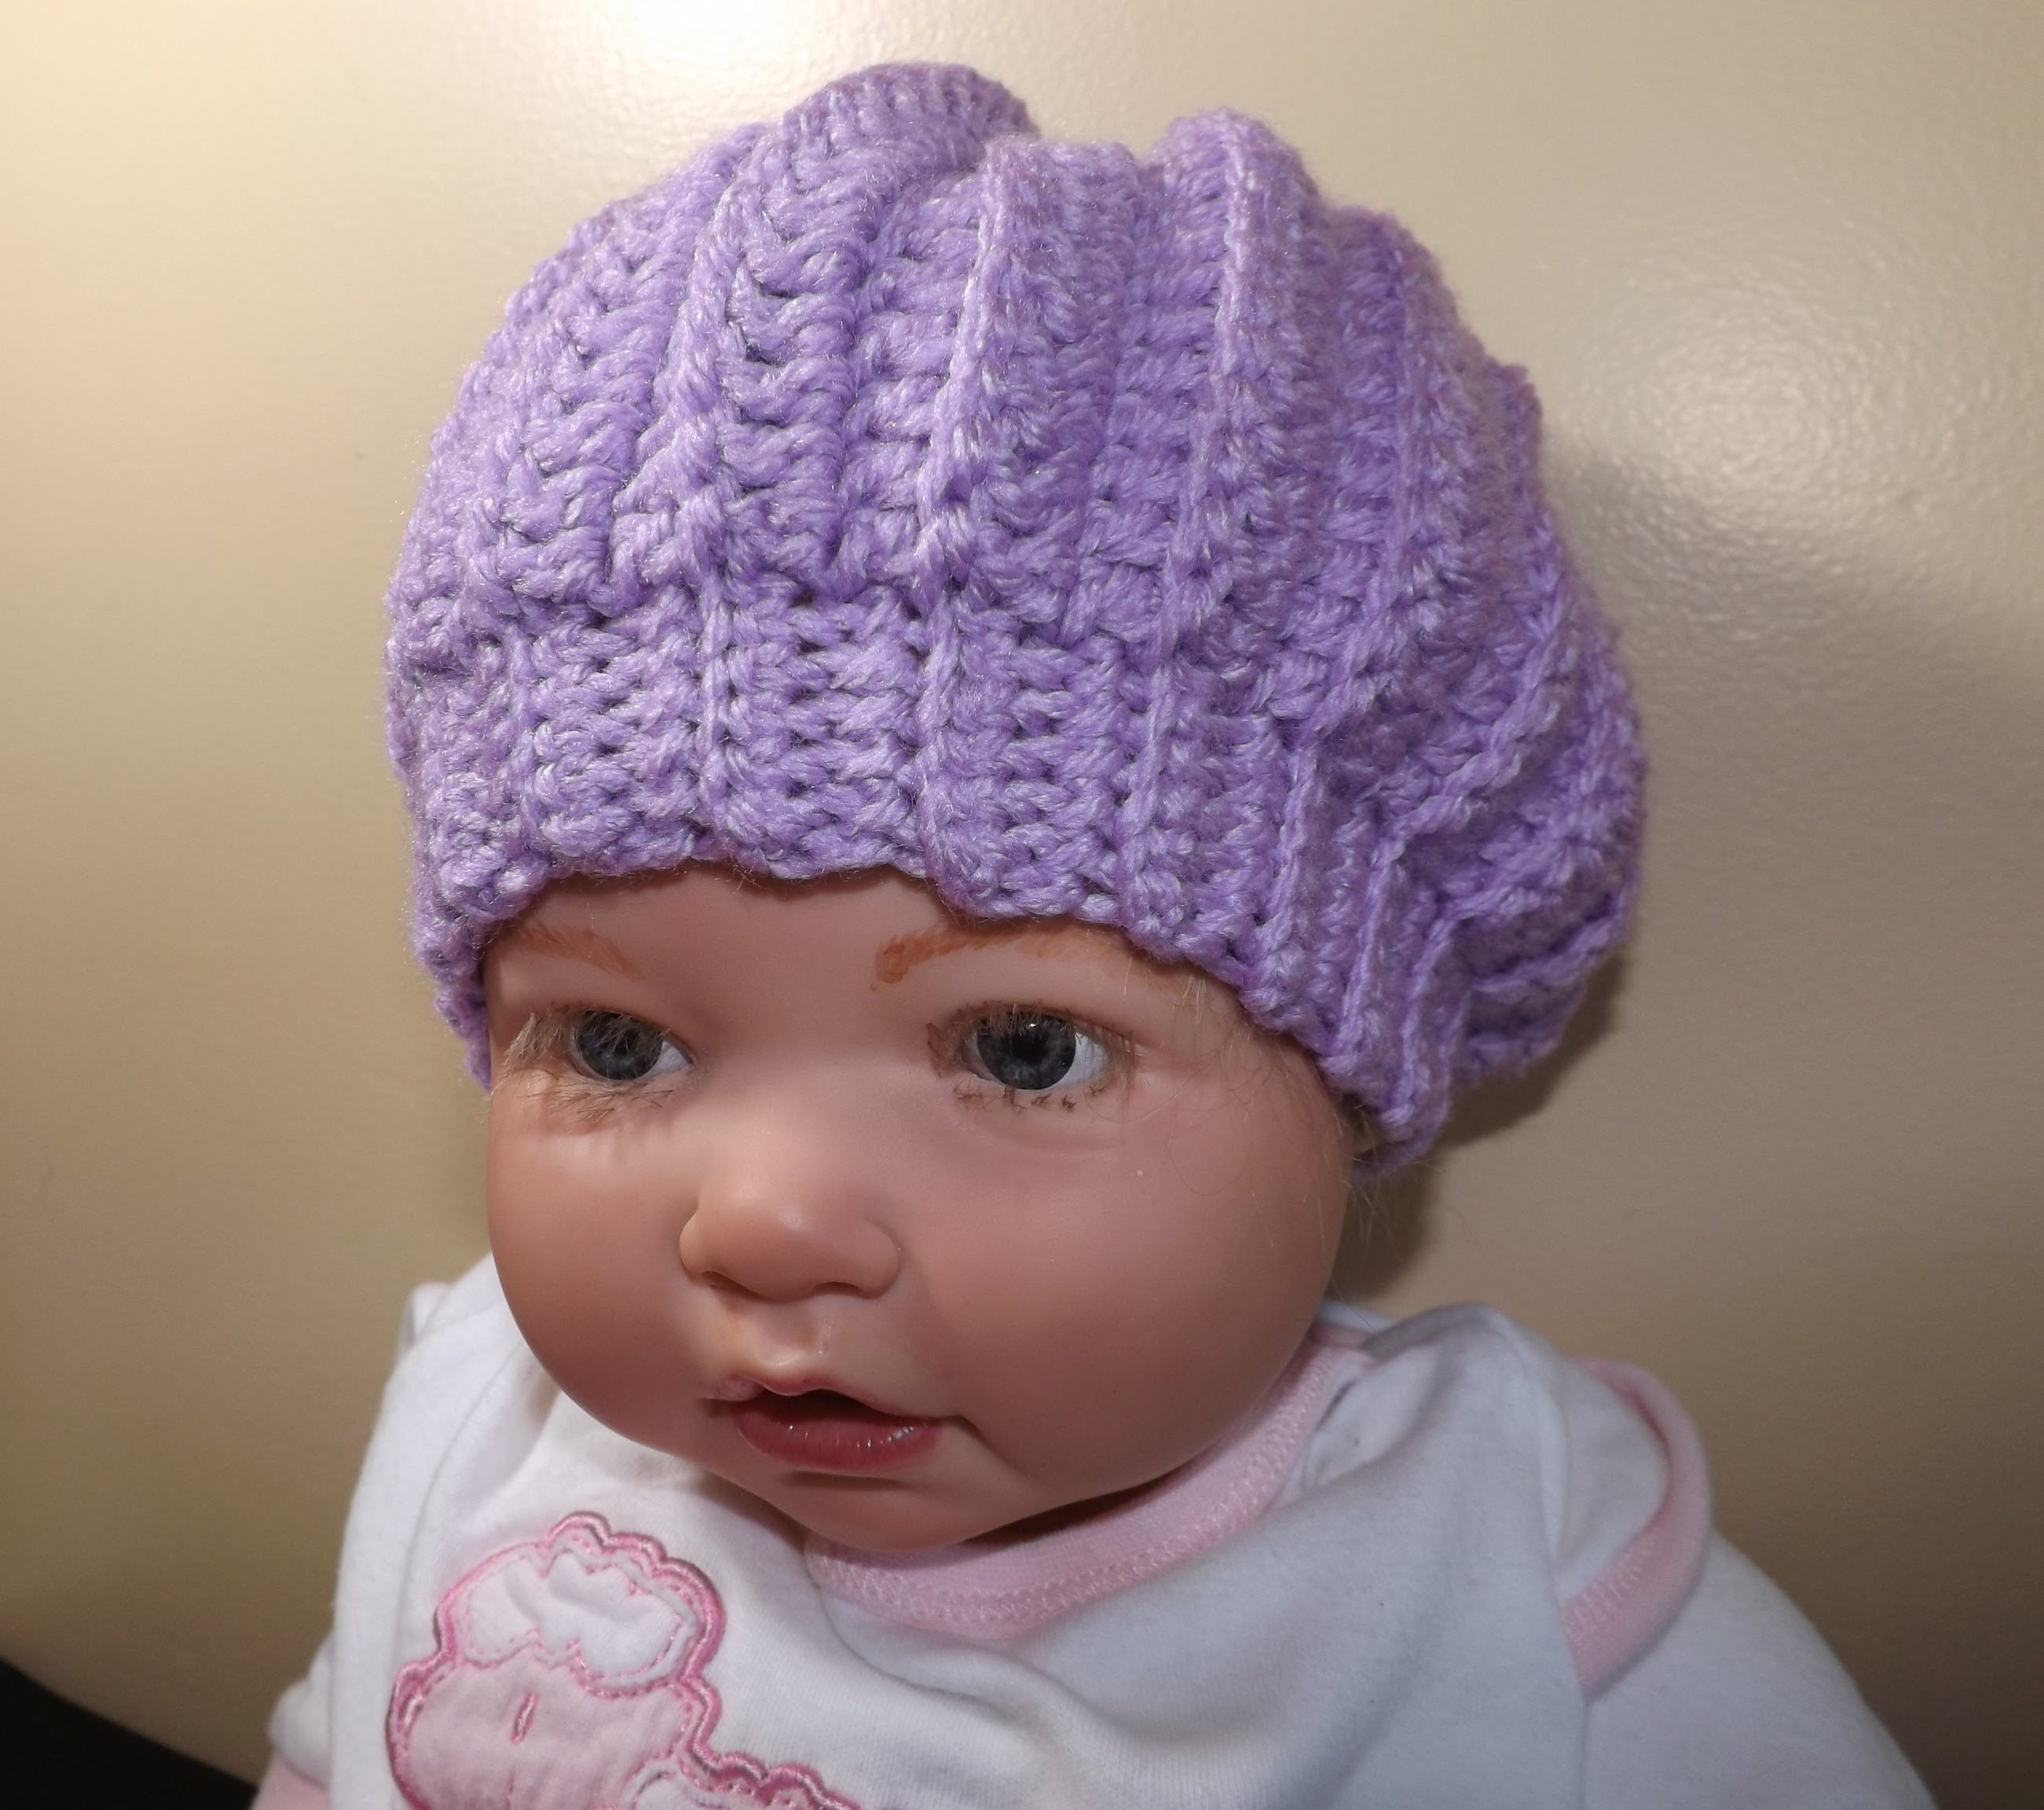 Crochet cap for babies crochet baby hat - with ruby stedman - youtube QUOMRNL